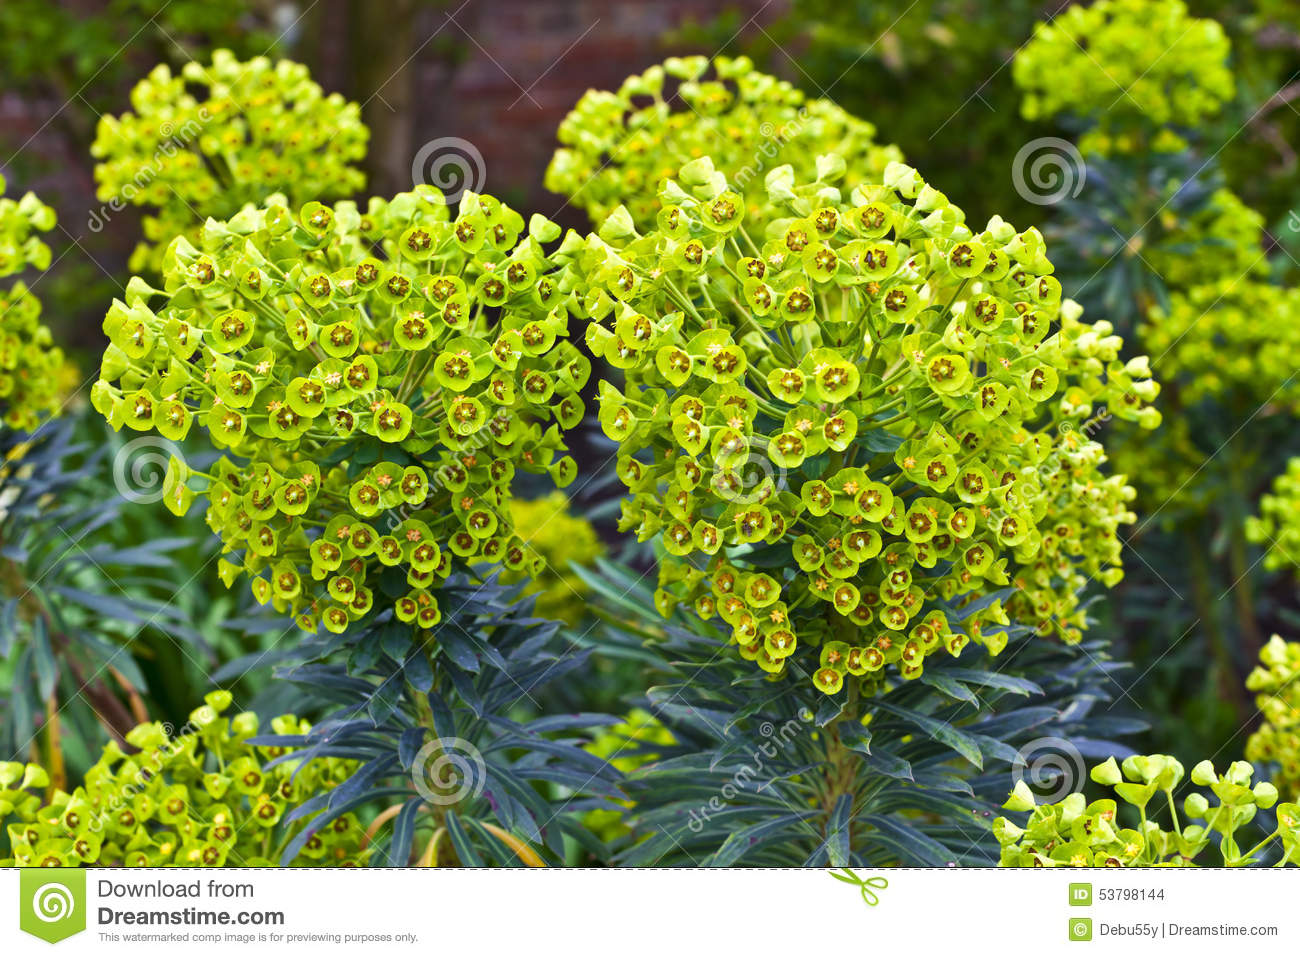 Plante vivace dans un jardin photo stock image 53798144 for Plante ornementale des jardins